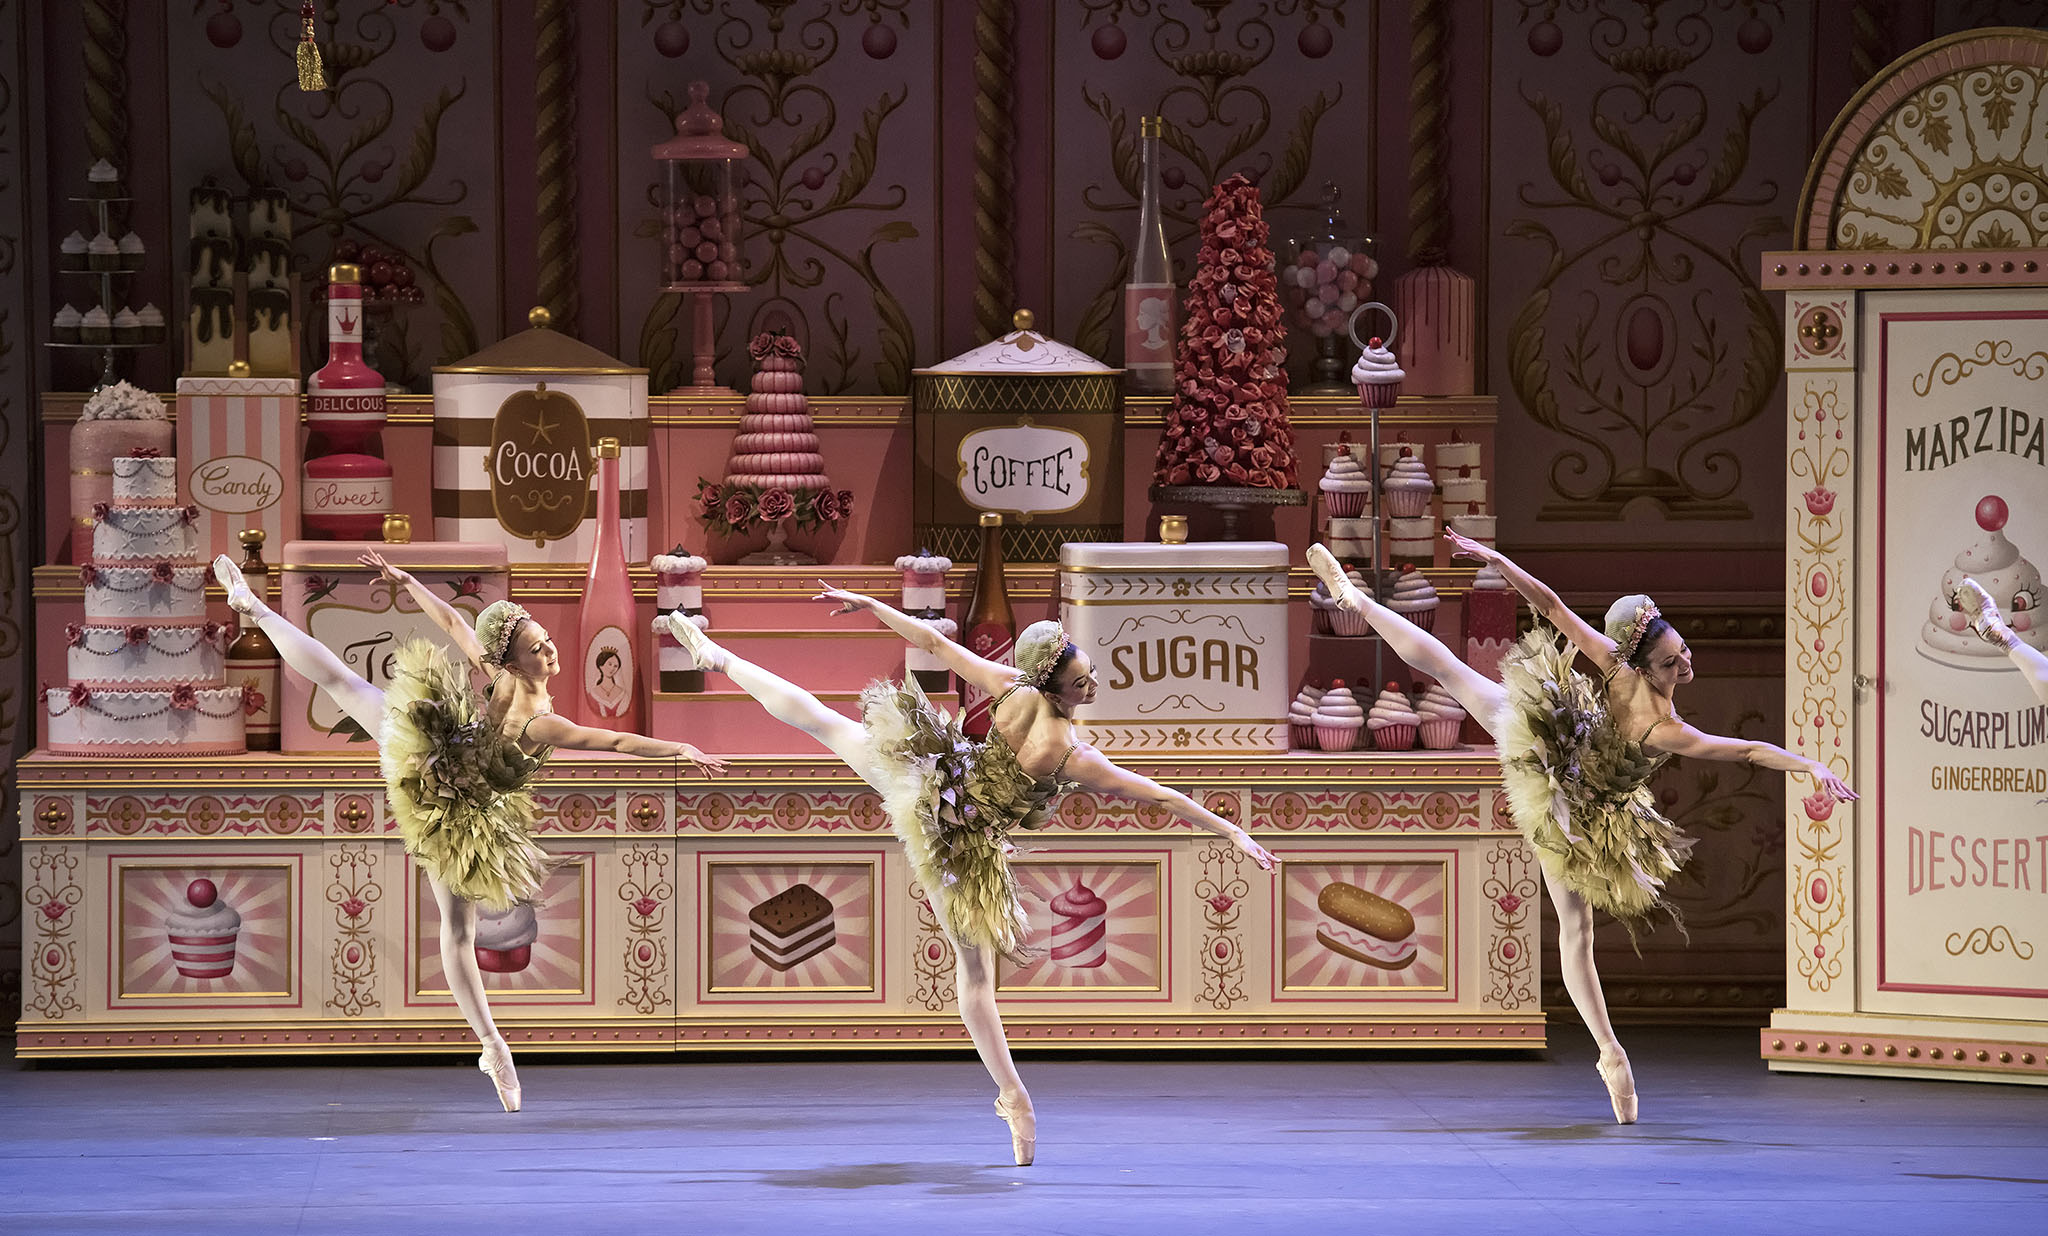 Katherine Williams, Paulina Waski and April Giangeruso in Whipped Cream at the American Ballet Theatre.